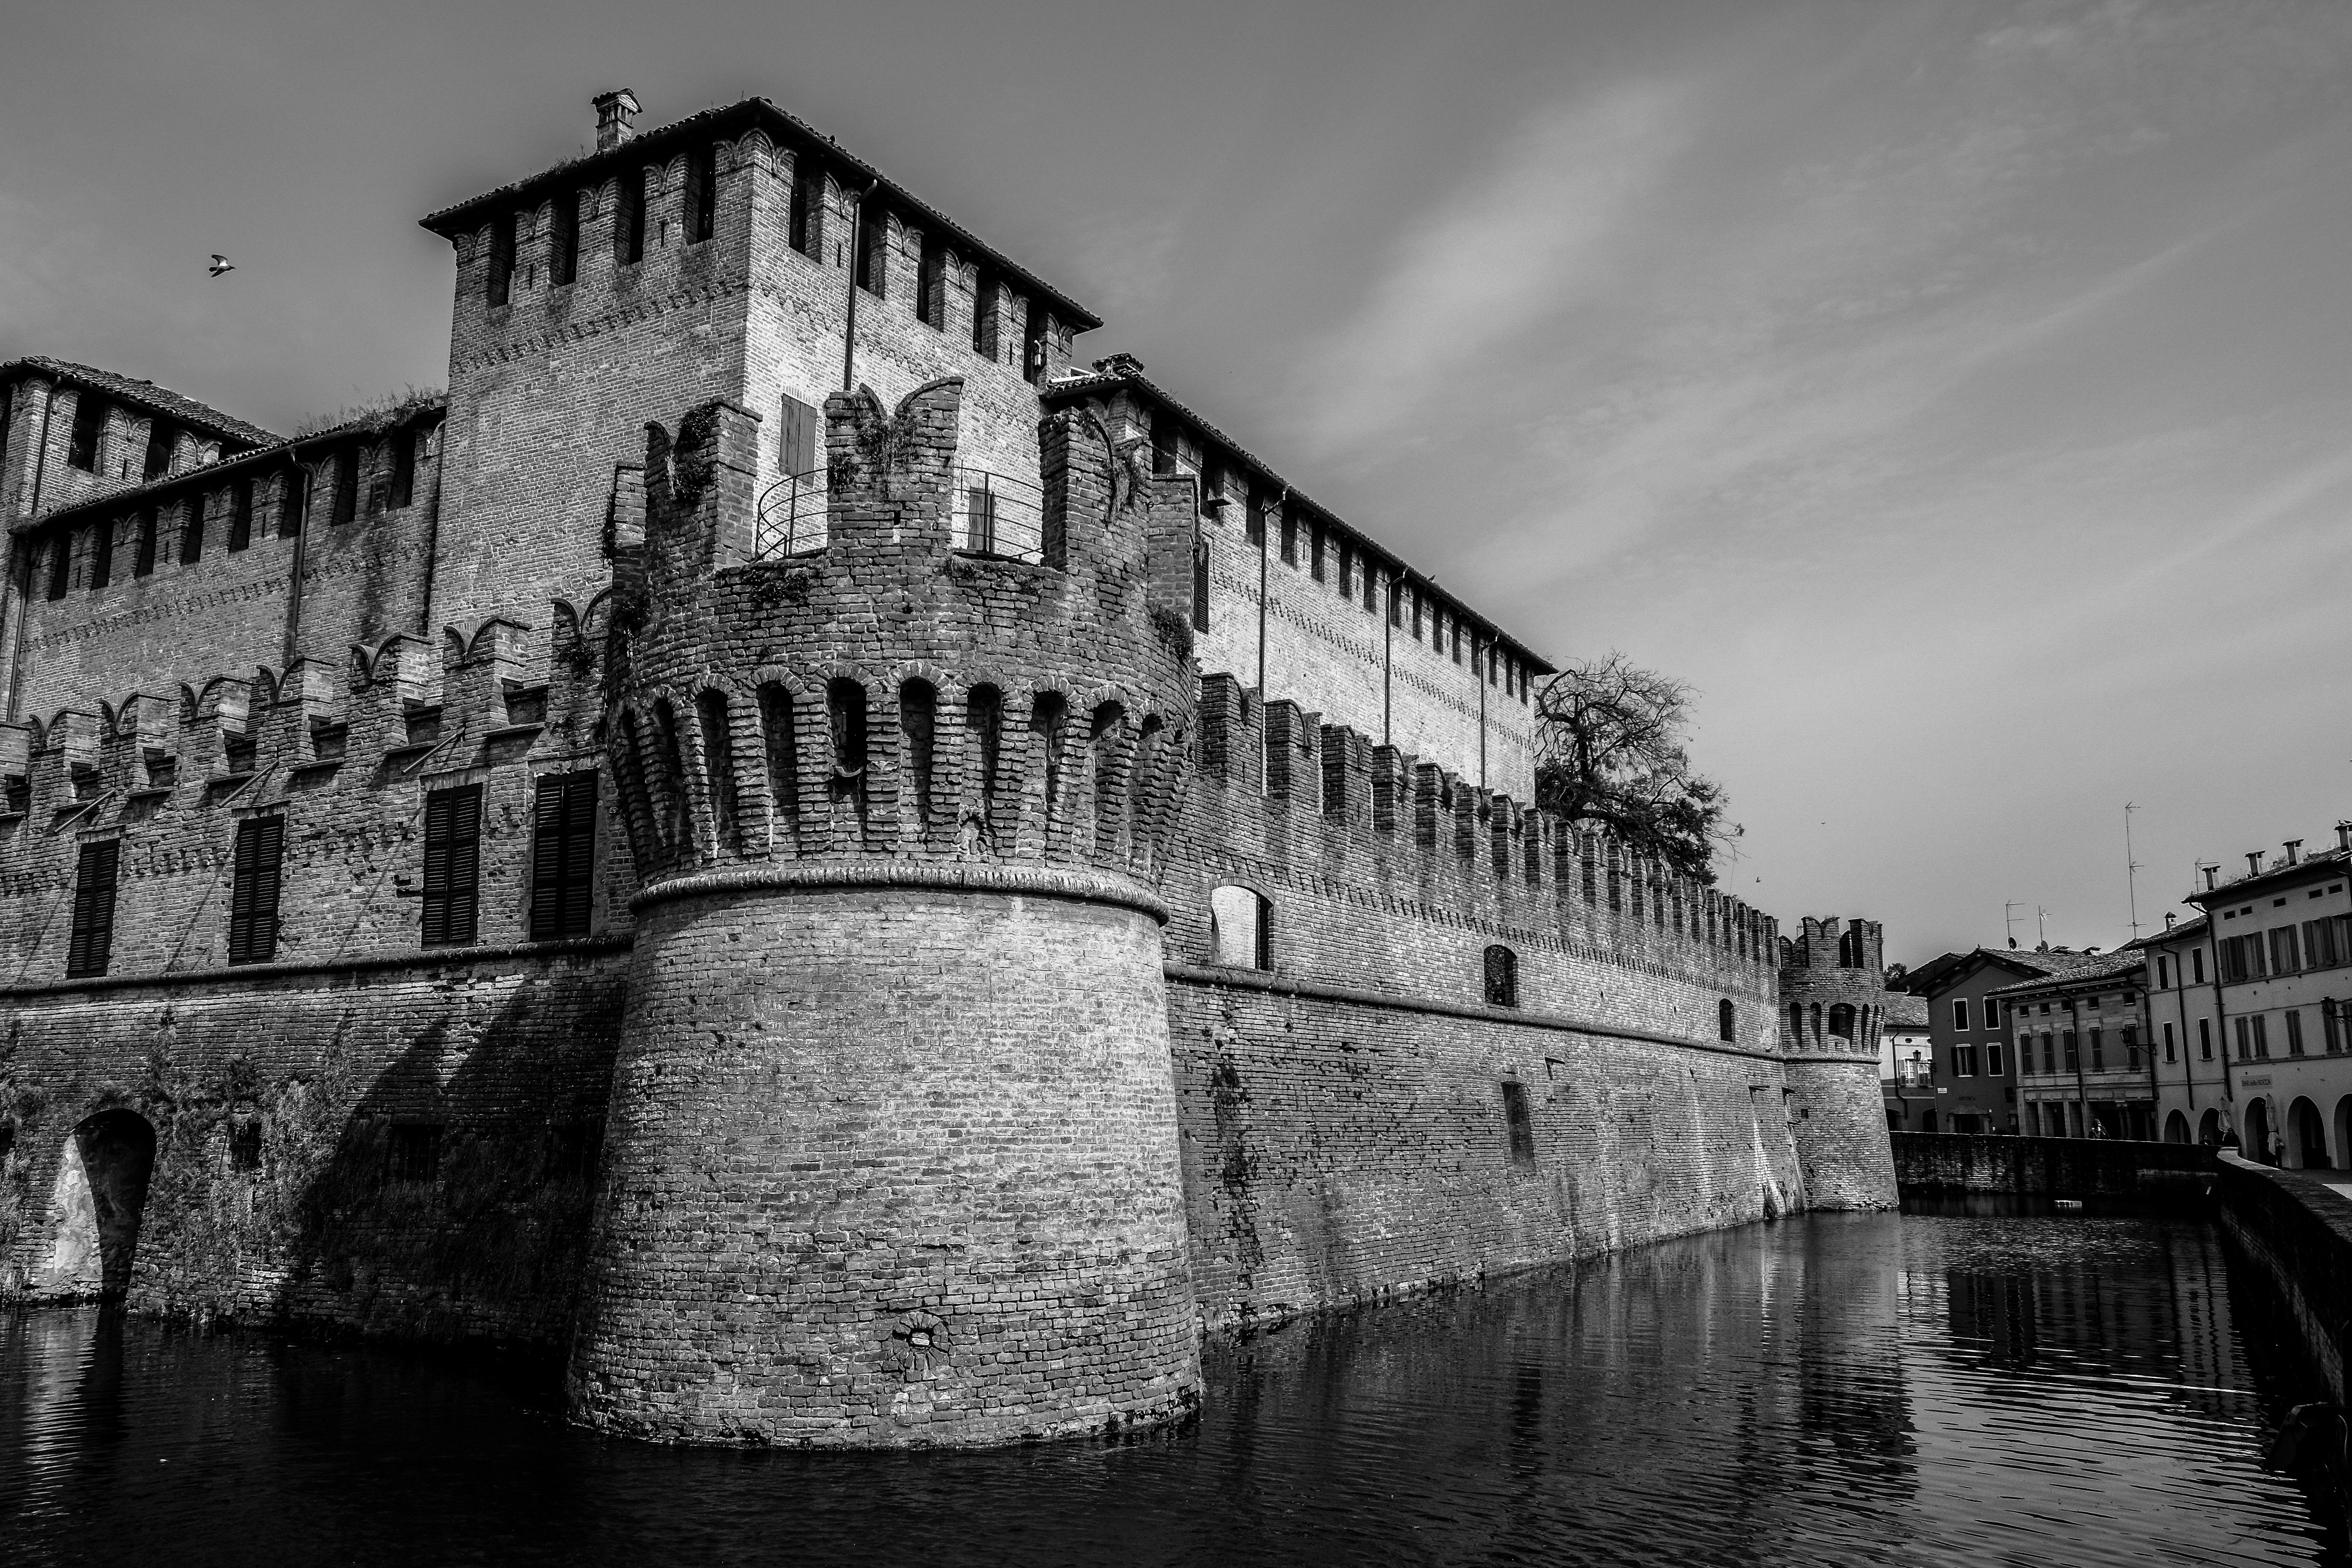 Castle Hotels in Italy, Honeymoon in Italy Travel Guide